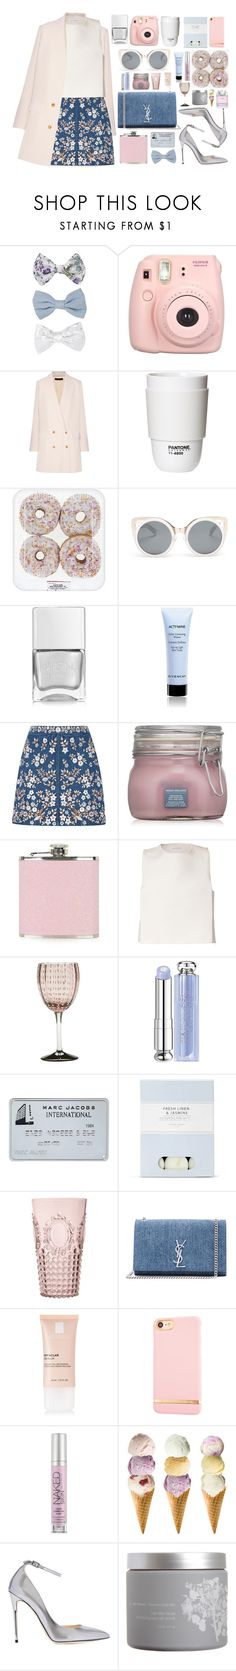 """""""Neutral"""" by tamaramanhardt ❤ liked on Polyvore featuring New Look, Fujifilm, The Row, ROOM COPENHAGEN, Erdem, Nails Inc., Givenchy, Needle & Thread, Topshop and J.W. Anderson"""